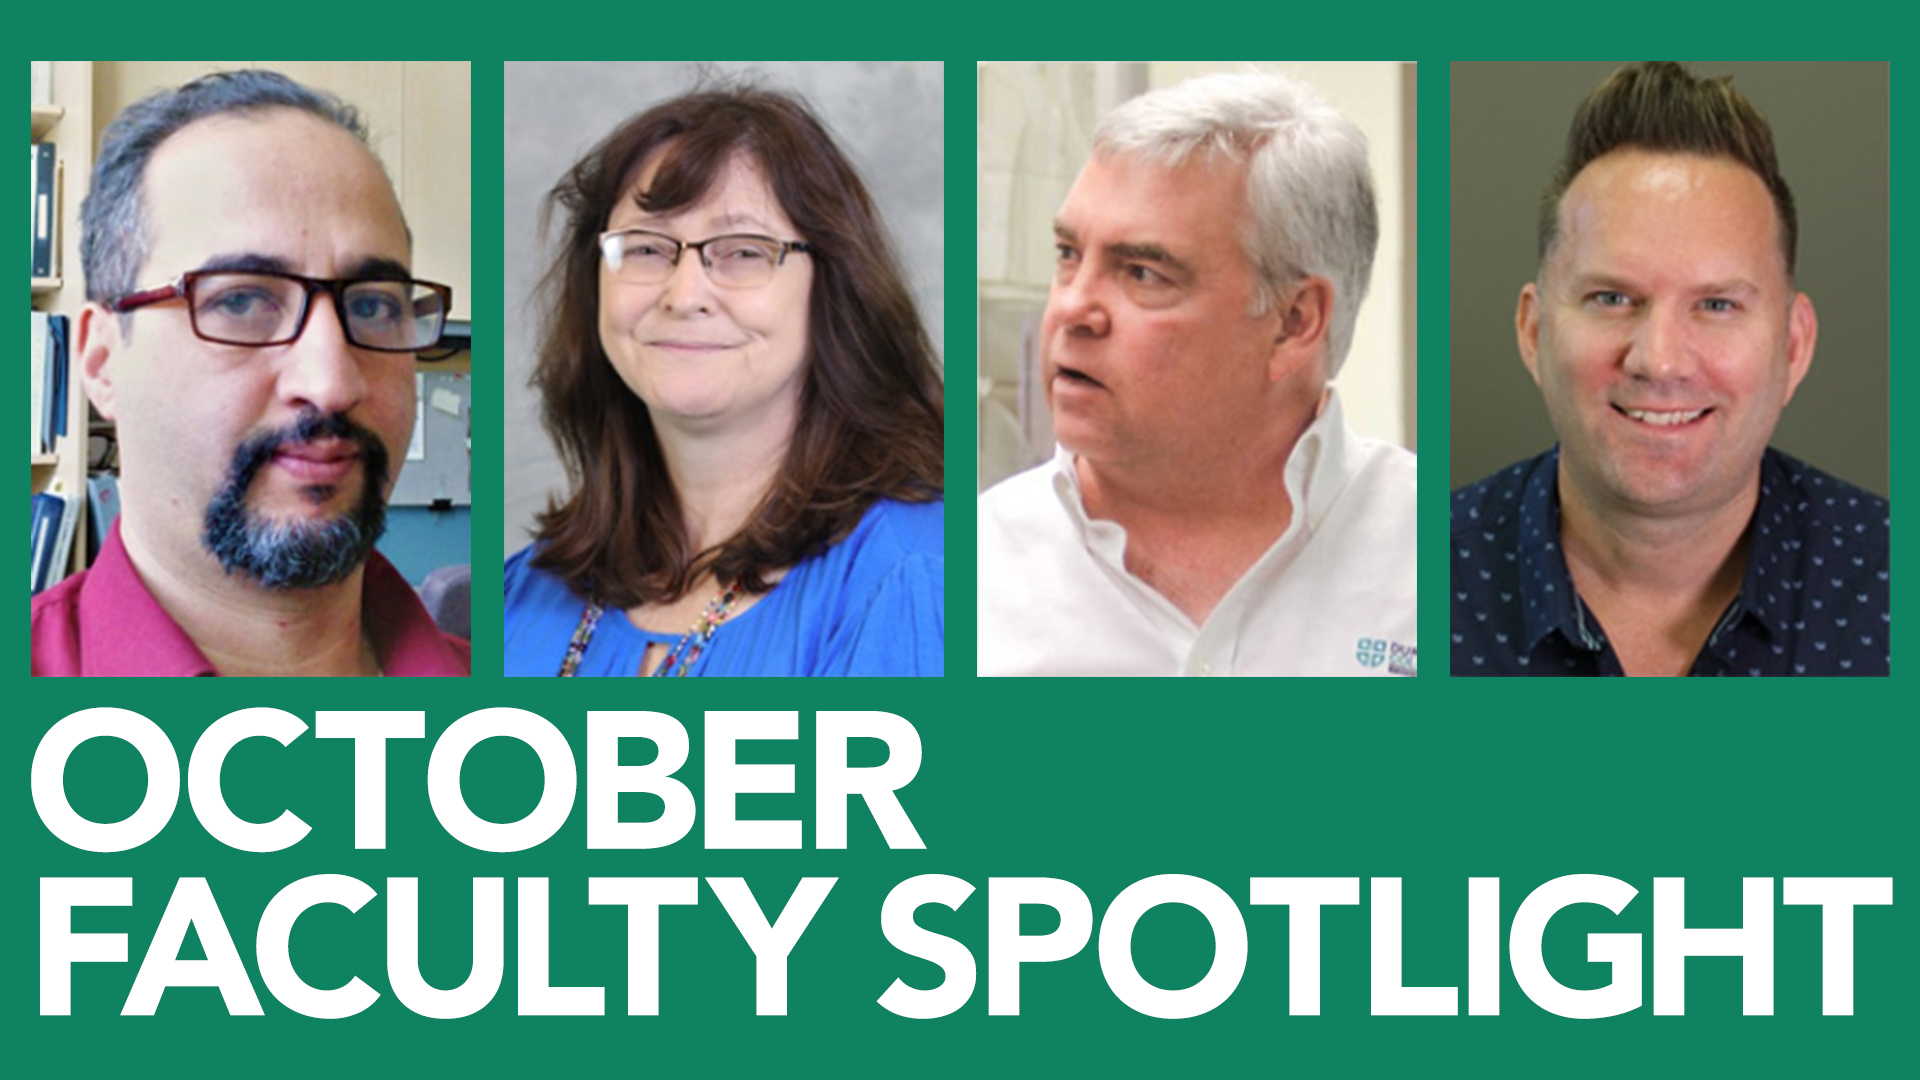 Shows profile picture of faculty members featured on the blog post